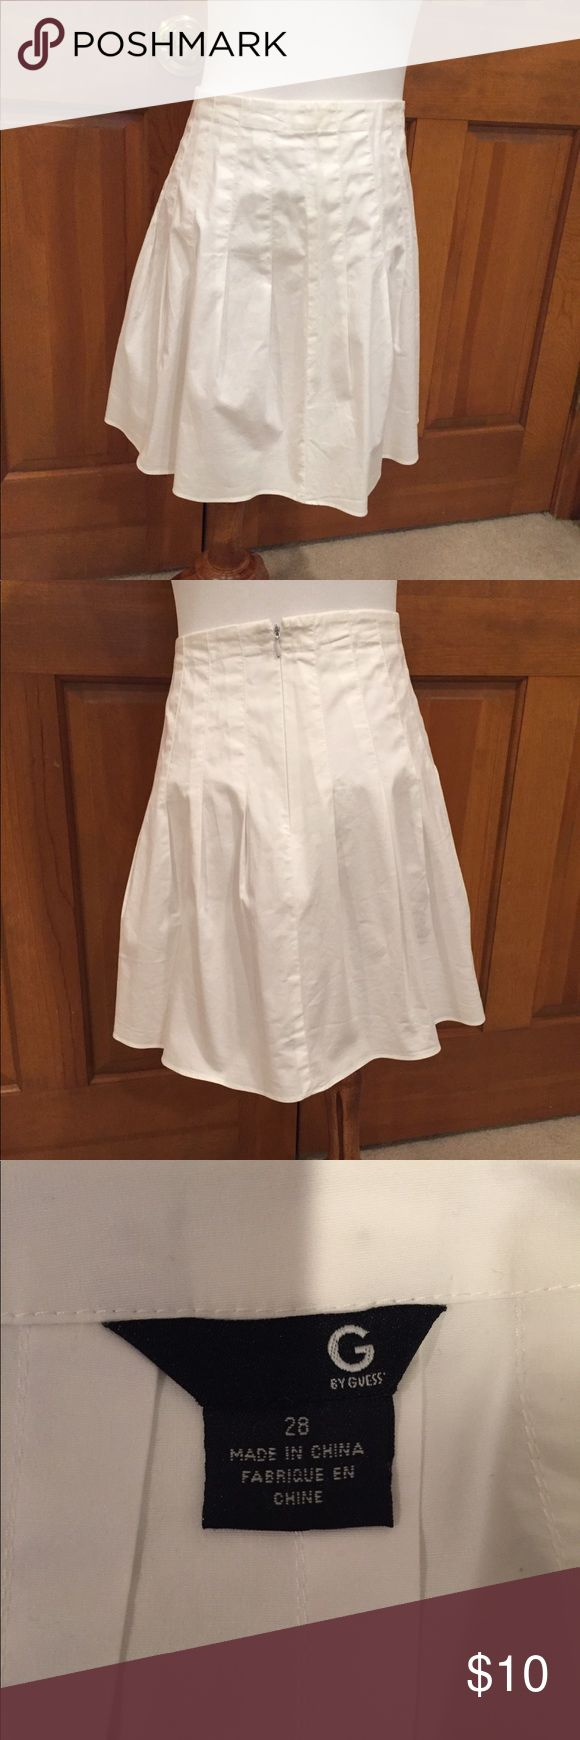 "Guess White Cotton Full Skirt Cool summer cotton skirt by Guess. Size 28 measures 15"" across waist and 16"" in length. 100% cotton with side zip. Excellent condition. Just listed. All $10 items are 2/$15 so bundle and save! G by Guess Skirts A-Line or Full"